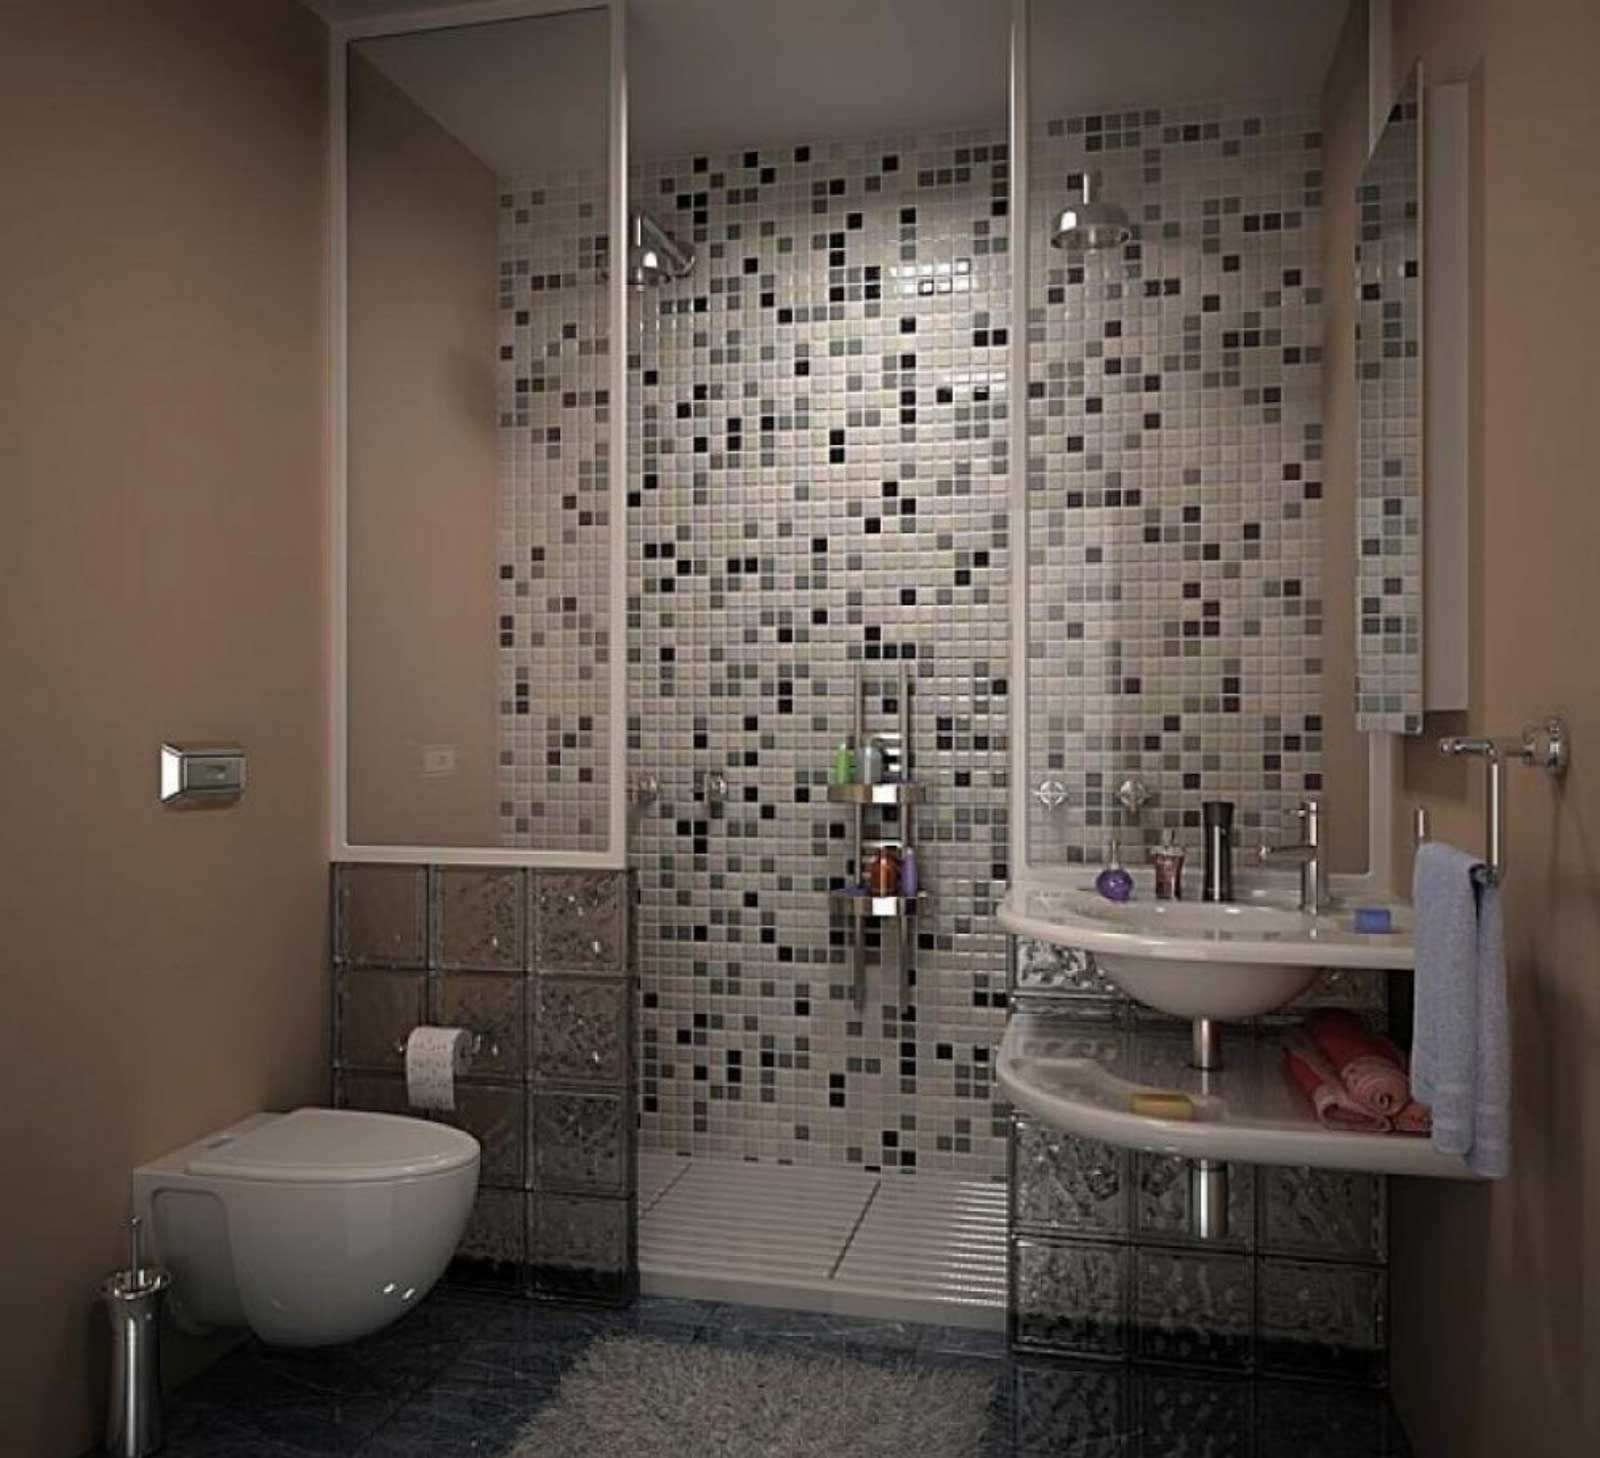 bathroom tiles designs for small spaces. Bathroom design ideas for small spaces featuring modern clear glass shower  window and interesting black